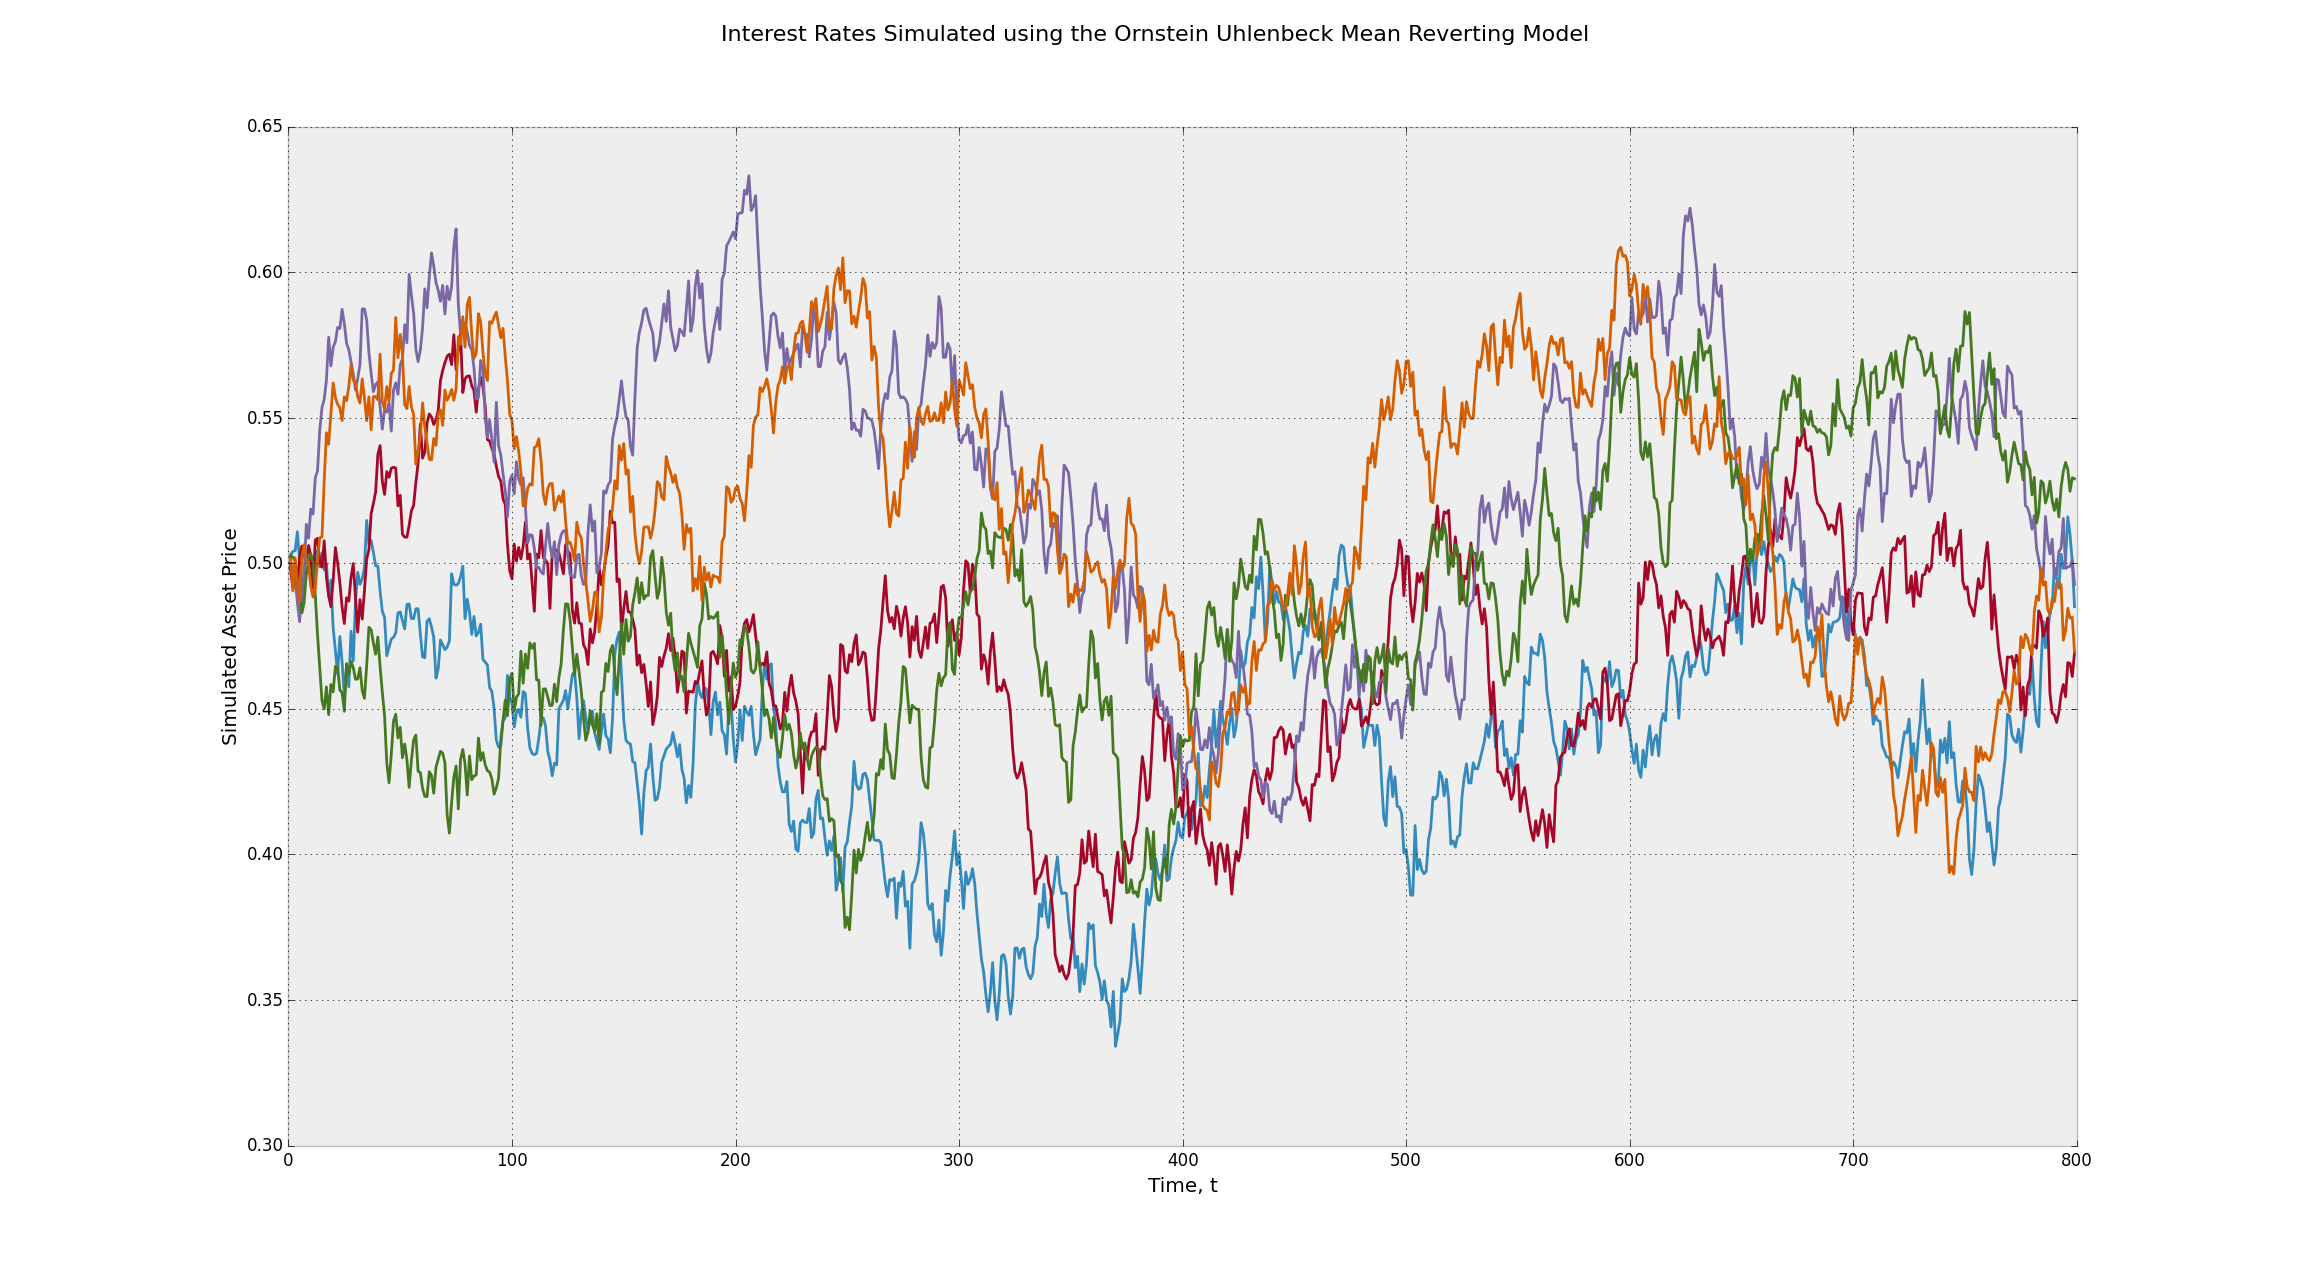 Interest Rates Simulated using the Ornstein Uhlenbeck Mean Reverting Stochastic Process